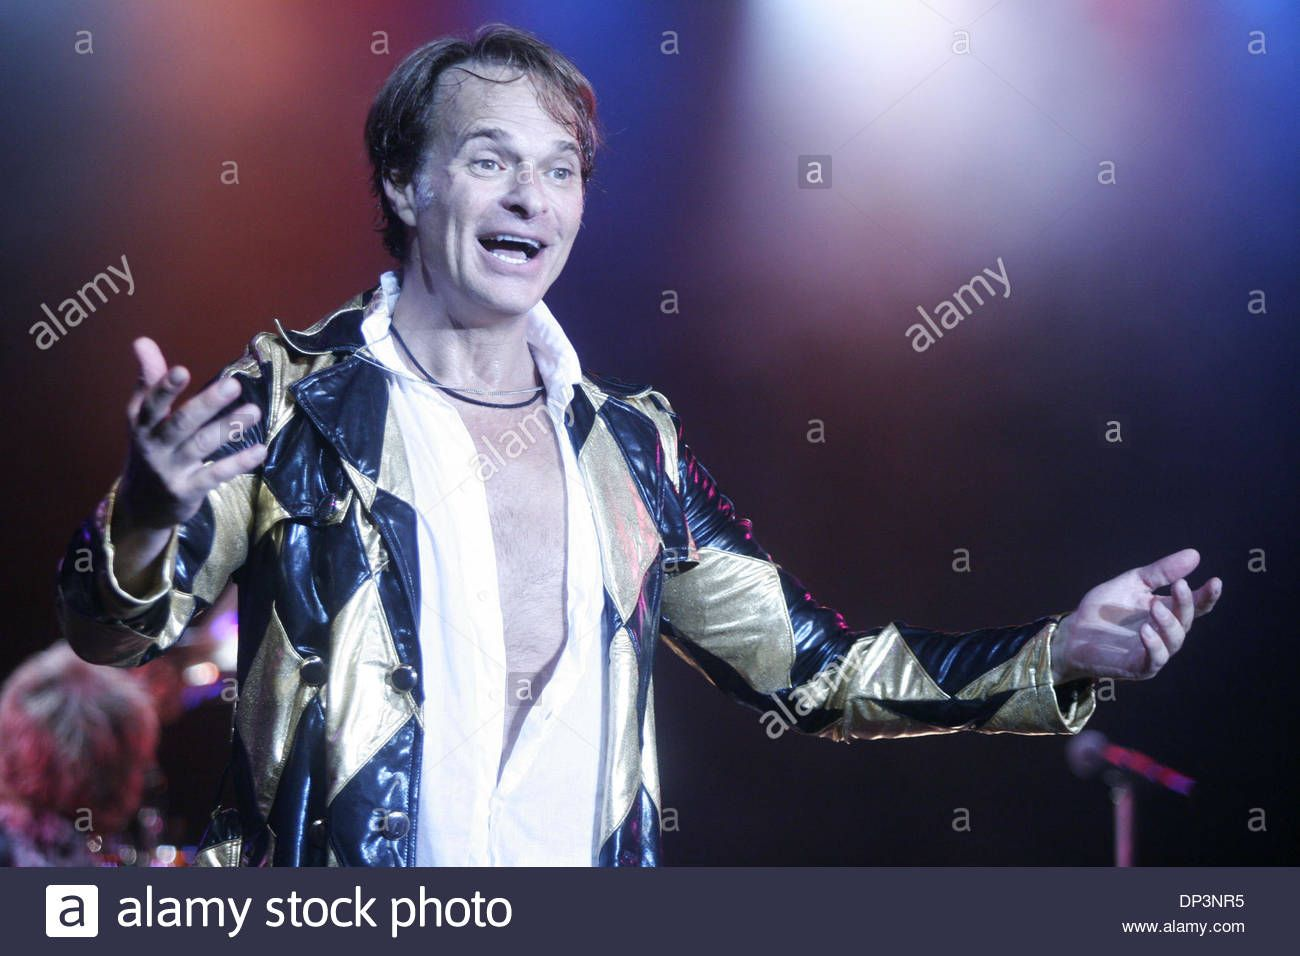 Who Doesn T Love This Smile Then There S Something Wrong With That Person Rf David Lee Roth Stock Photos Roth